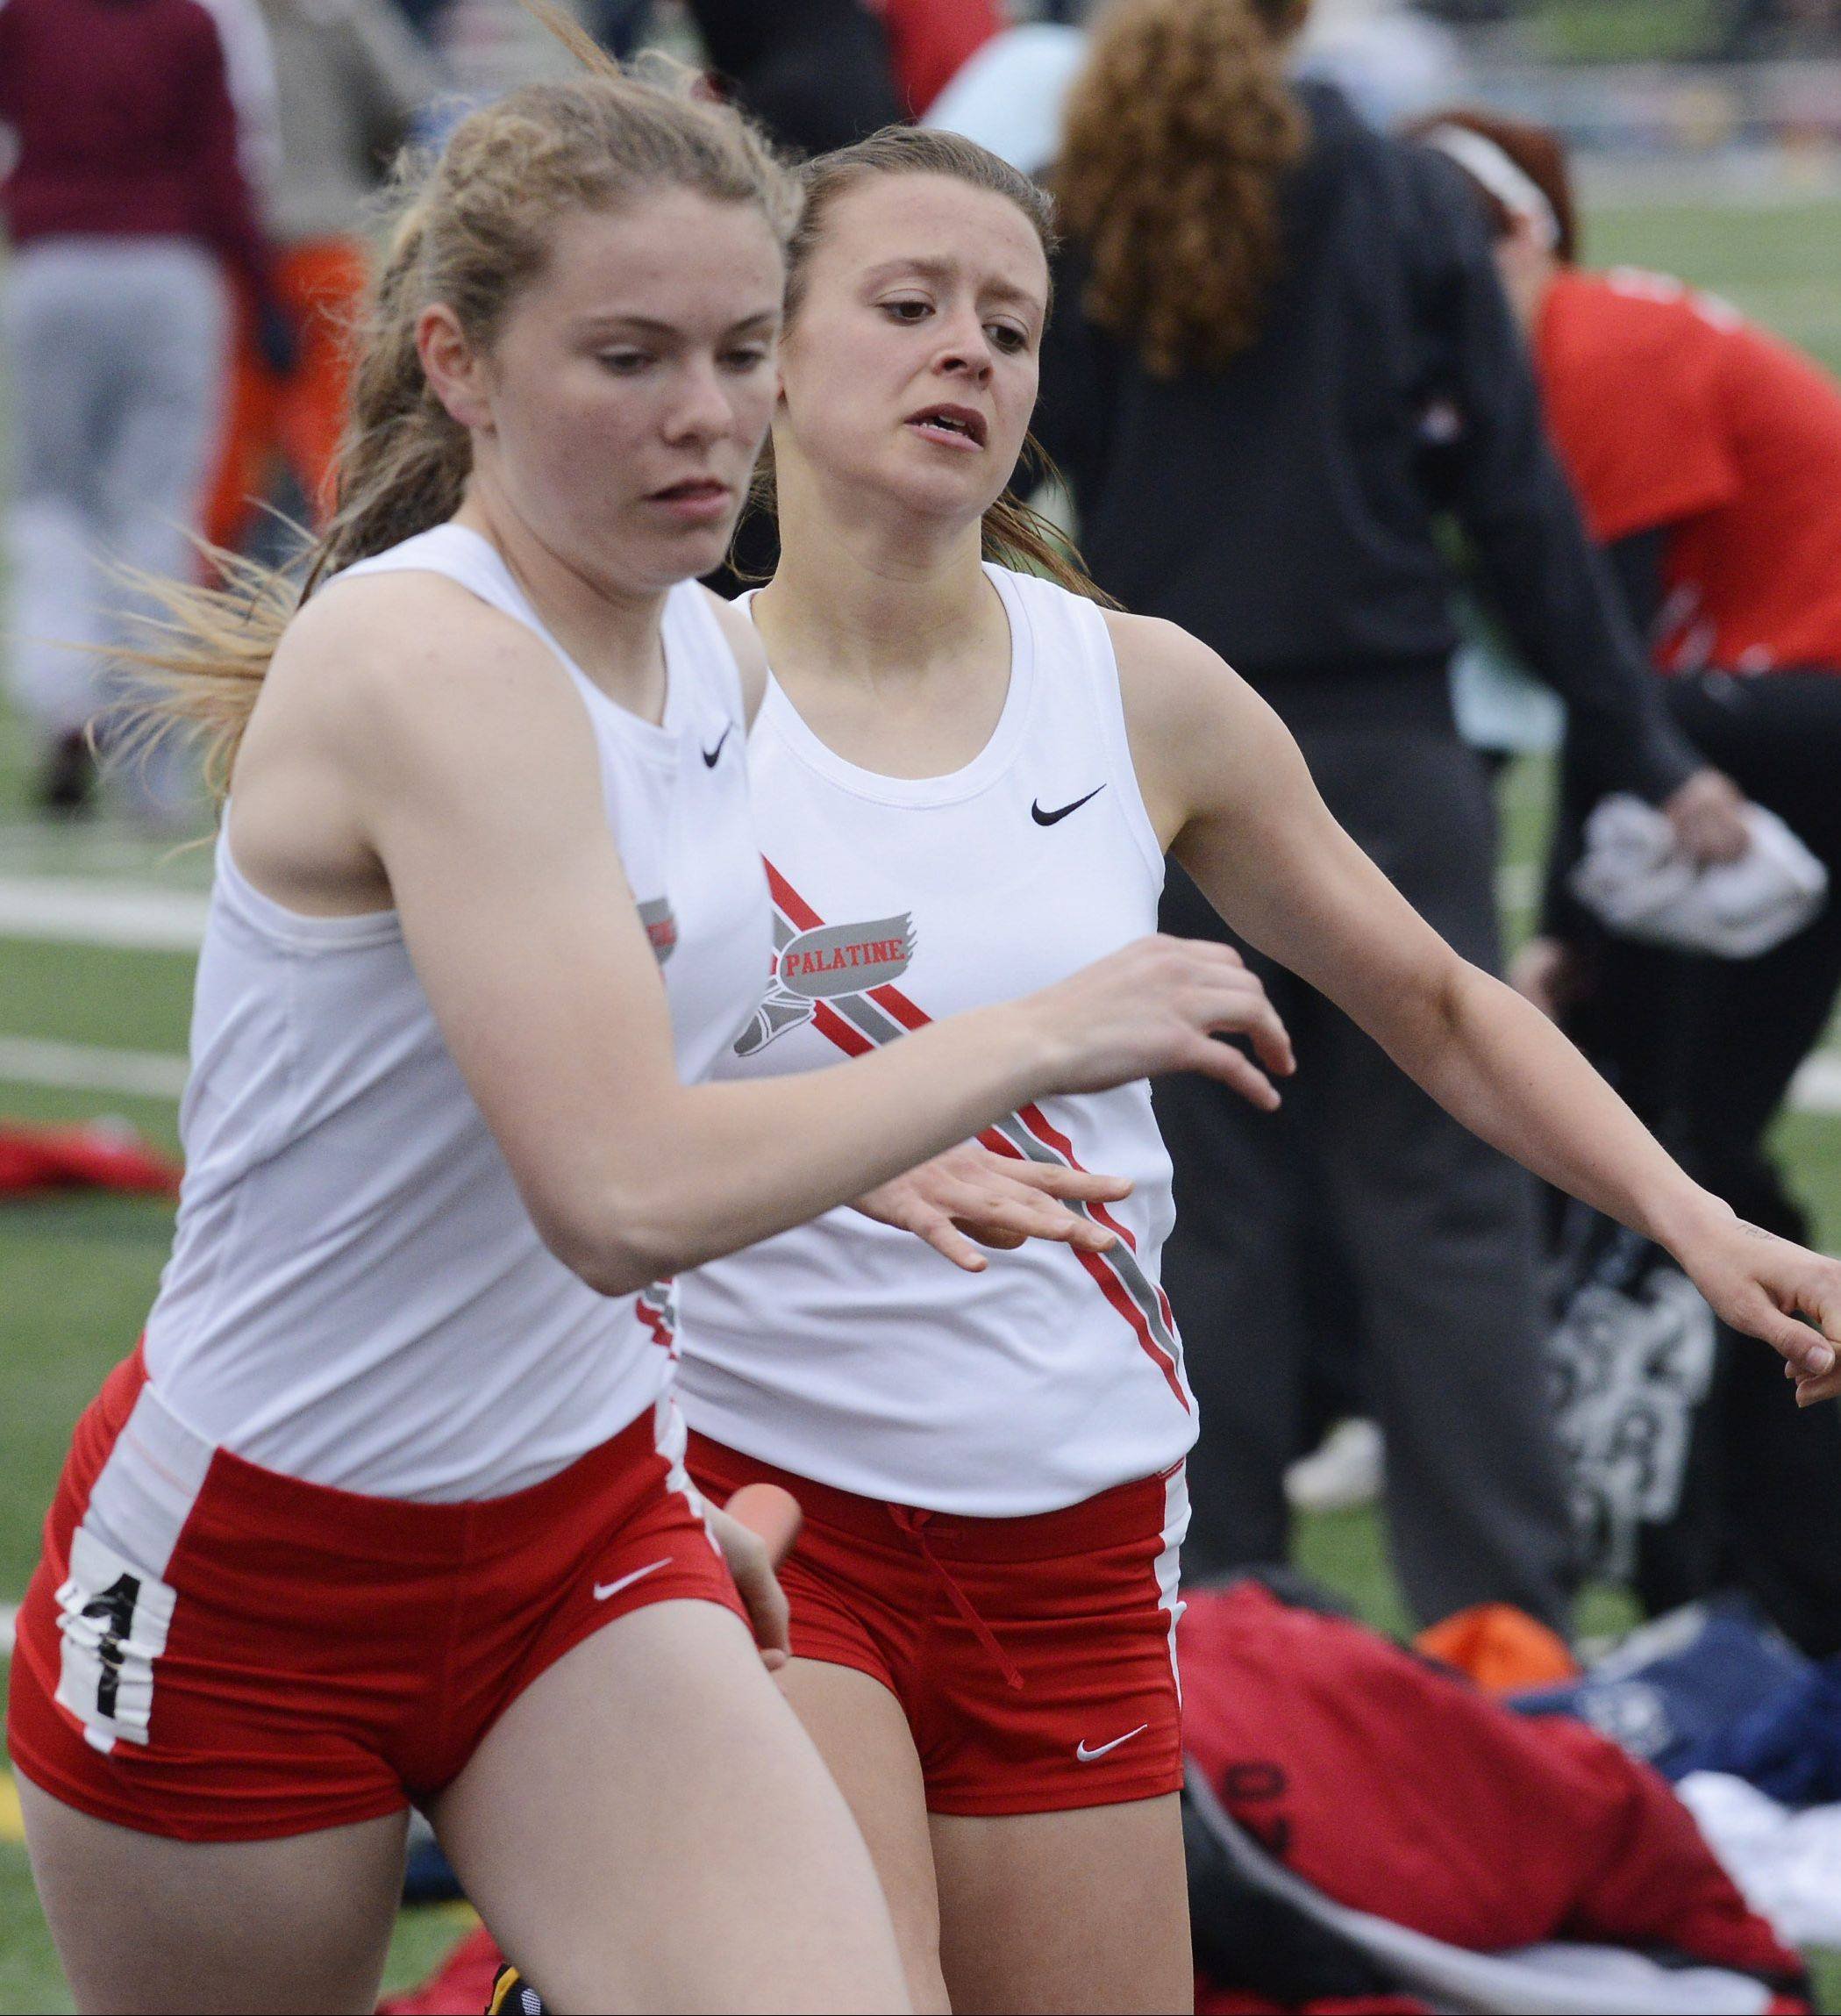 Palatine's Kara Burton, left, takes the baton from teammate Tess Wasowicz for the anchor leg of the 4 x 800-meter relay during the Mid-Suburban League girls track meet at Schaumburg on Friday.